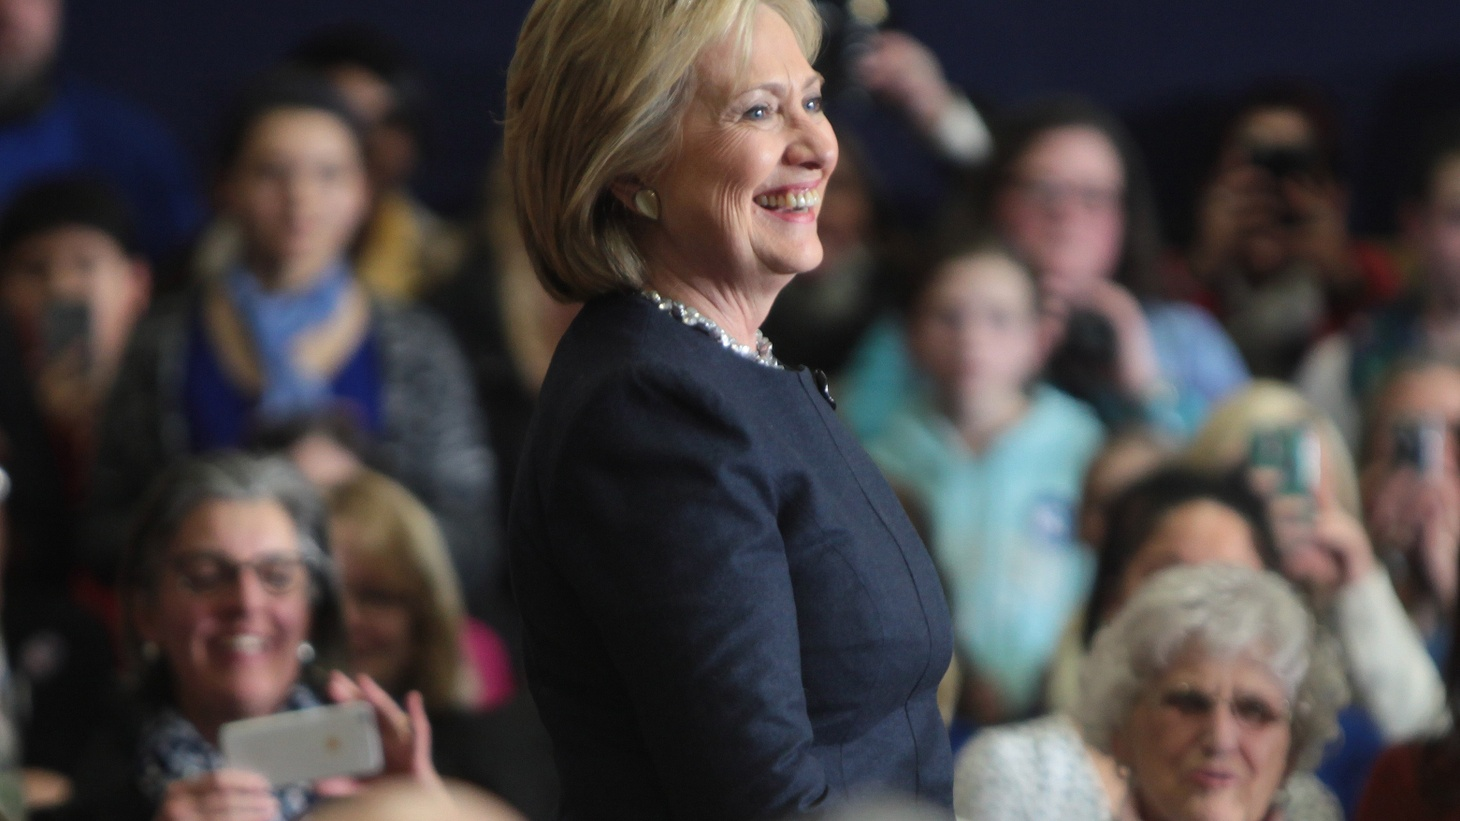 The issue of likeability has dogged Hillary Clinton since the 2008 presidential race against Barack Obama. Is she 'likeable enough' to win in this election?